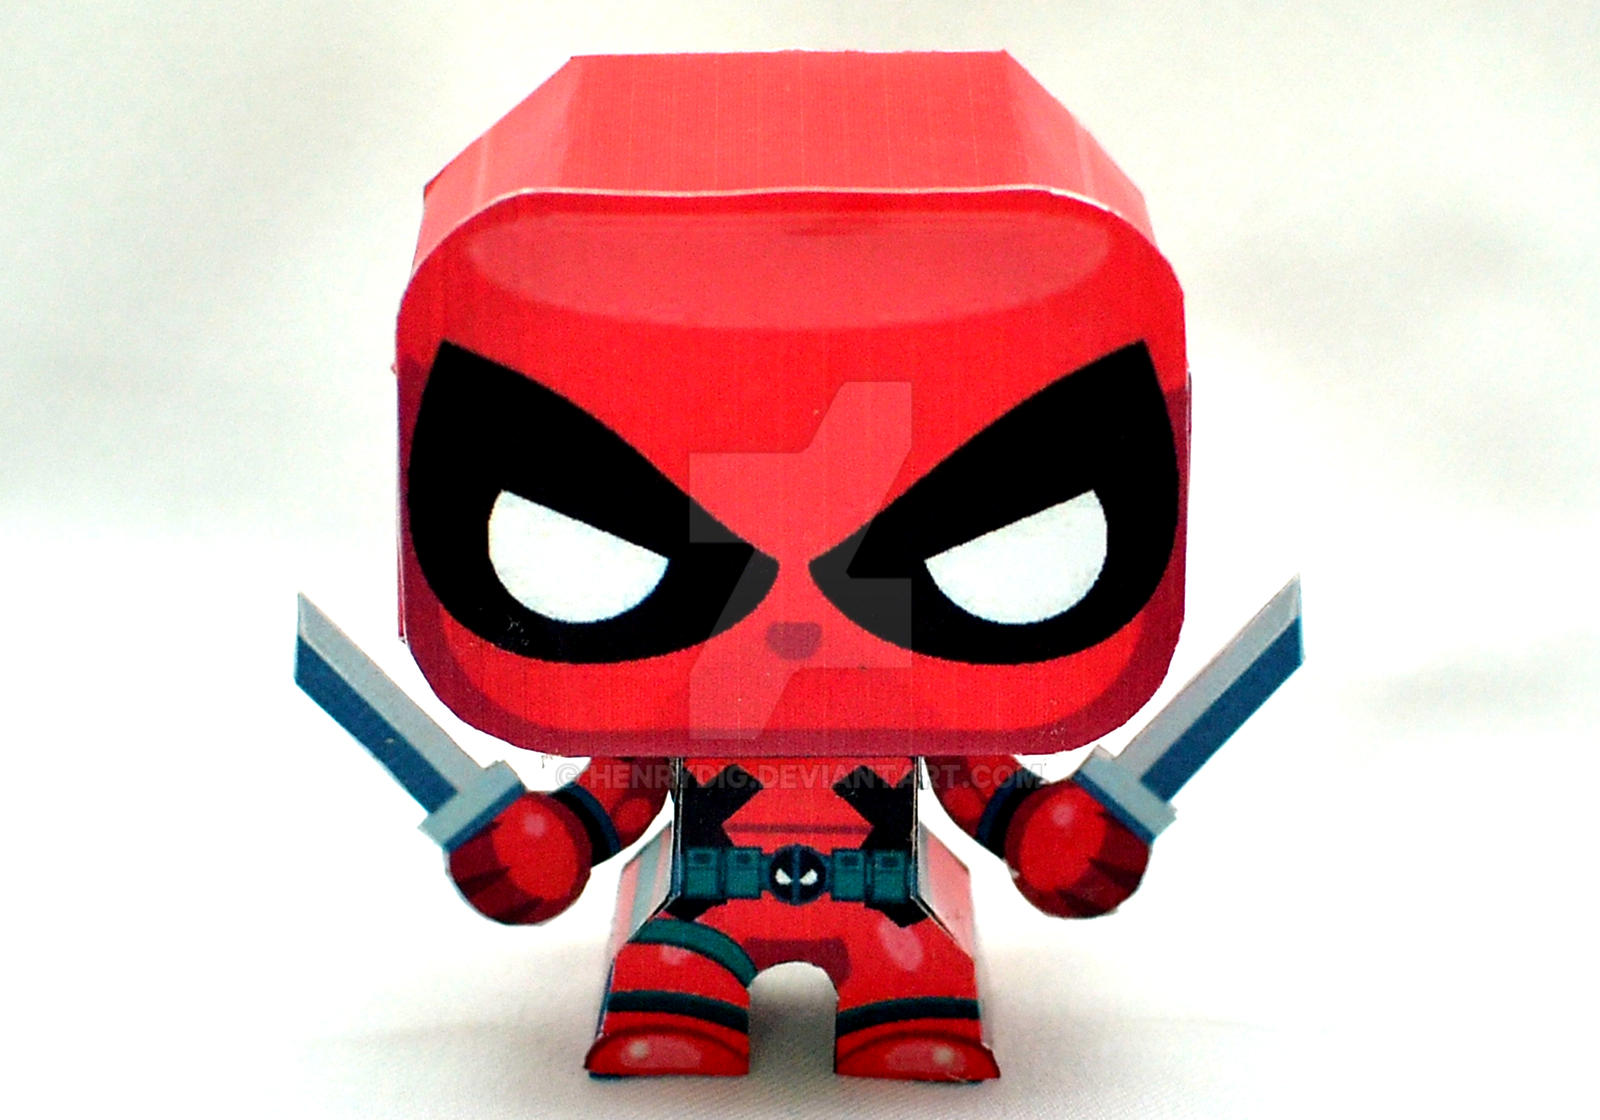 Mini Deadpool Papercraft By Henrydig On Deviantart